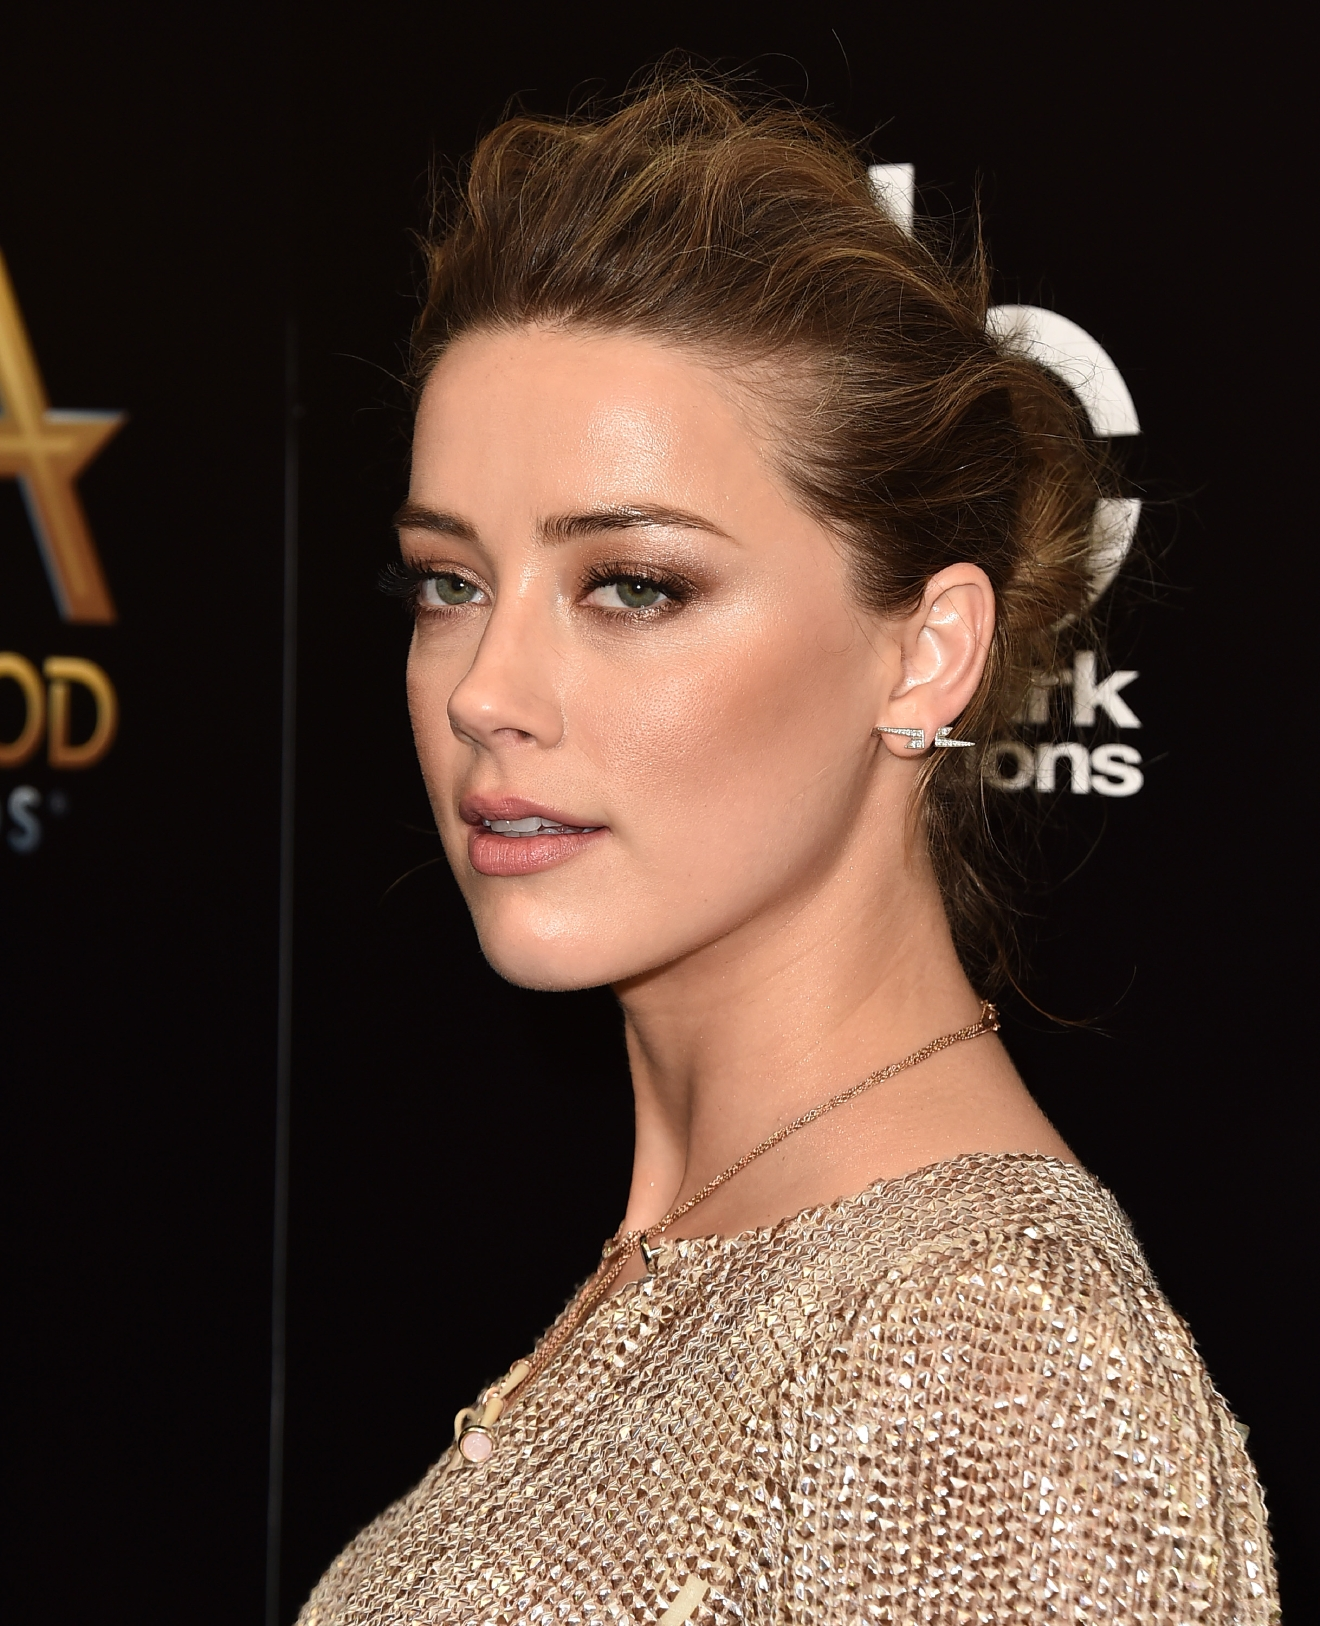 Amber Heard poses in the press room at the Hollywood Film Awards at the Beverly Hilton Hotel on Sunday, Nov. 1, 2015, in Beverly Hills, Calif. (Photo by Jordan Strauss/Invision/AP)